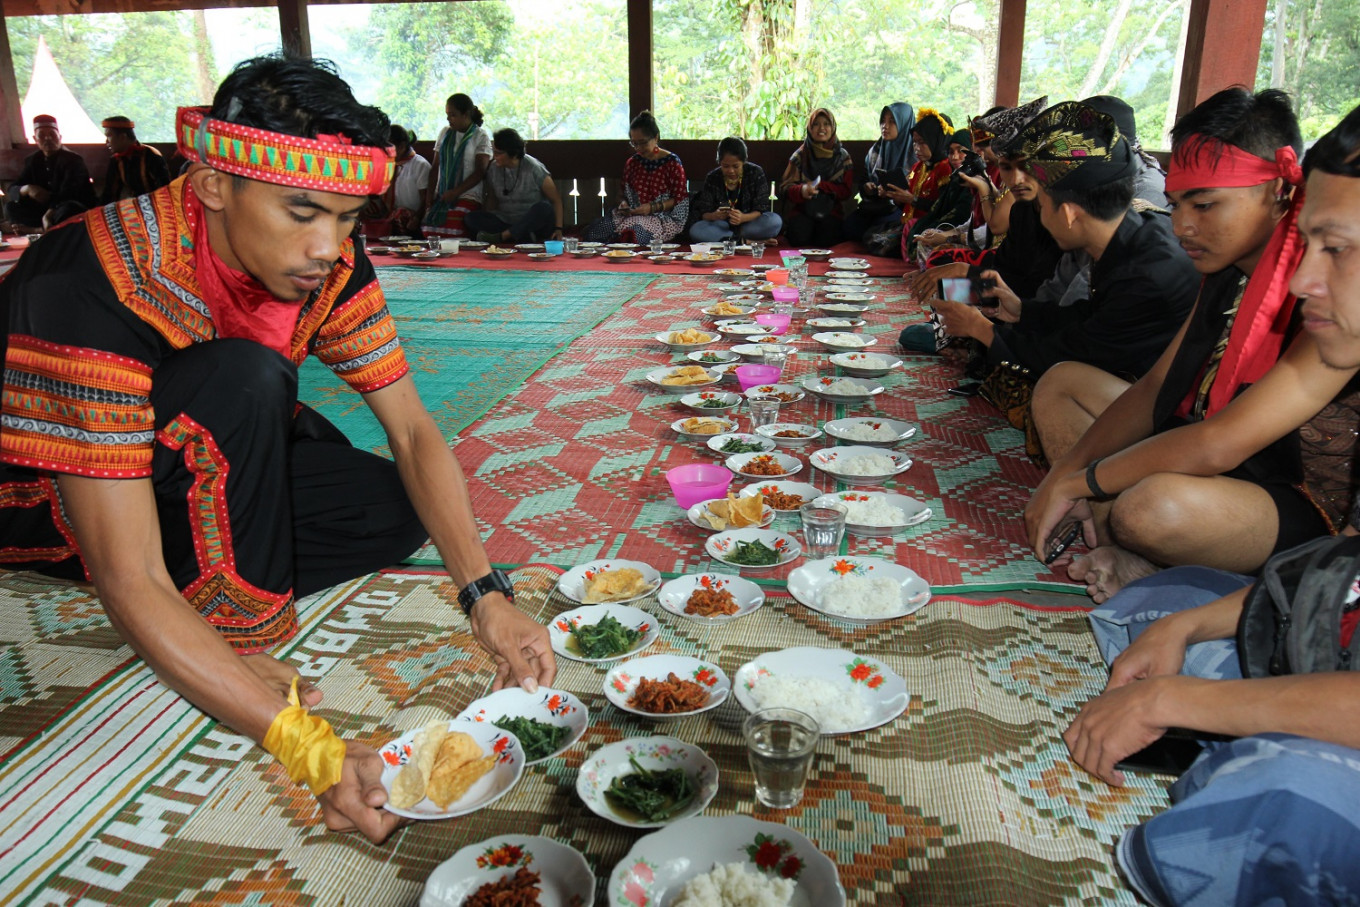 A man from Ketambe, Southeast Aceh, serves food to guests at the Archipelago Jamboree in Ketambe village, Aceh, on July 23, 2019.